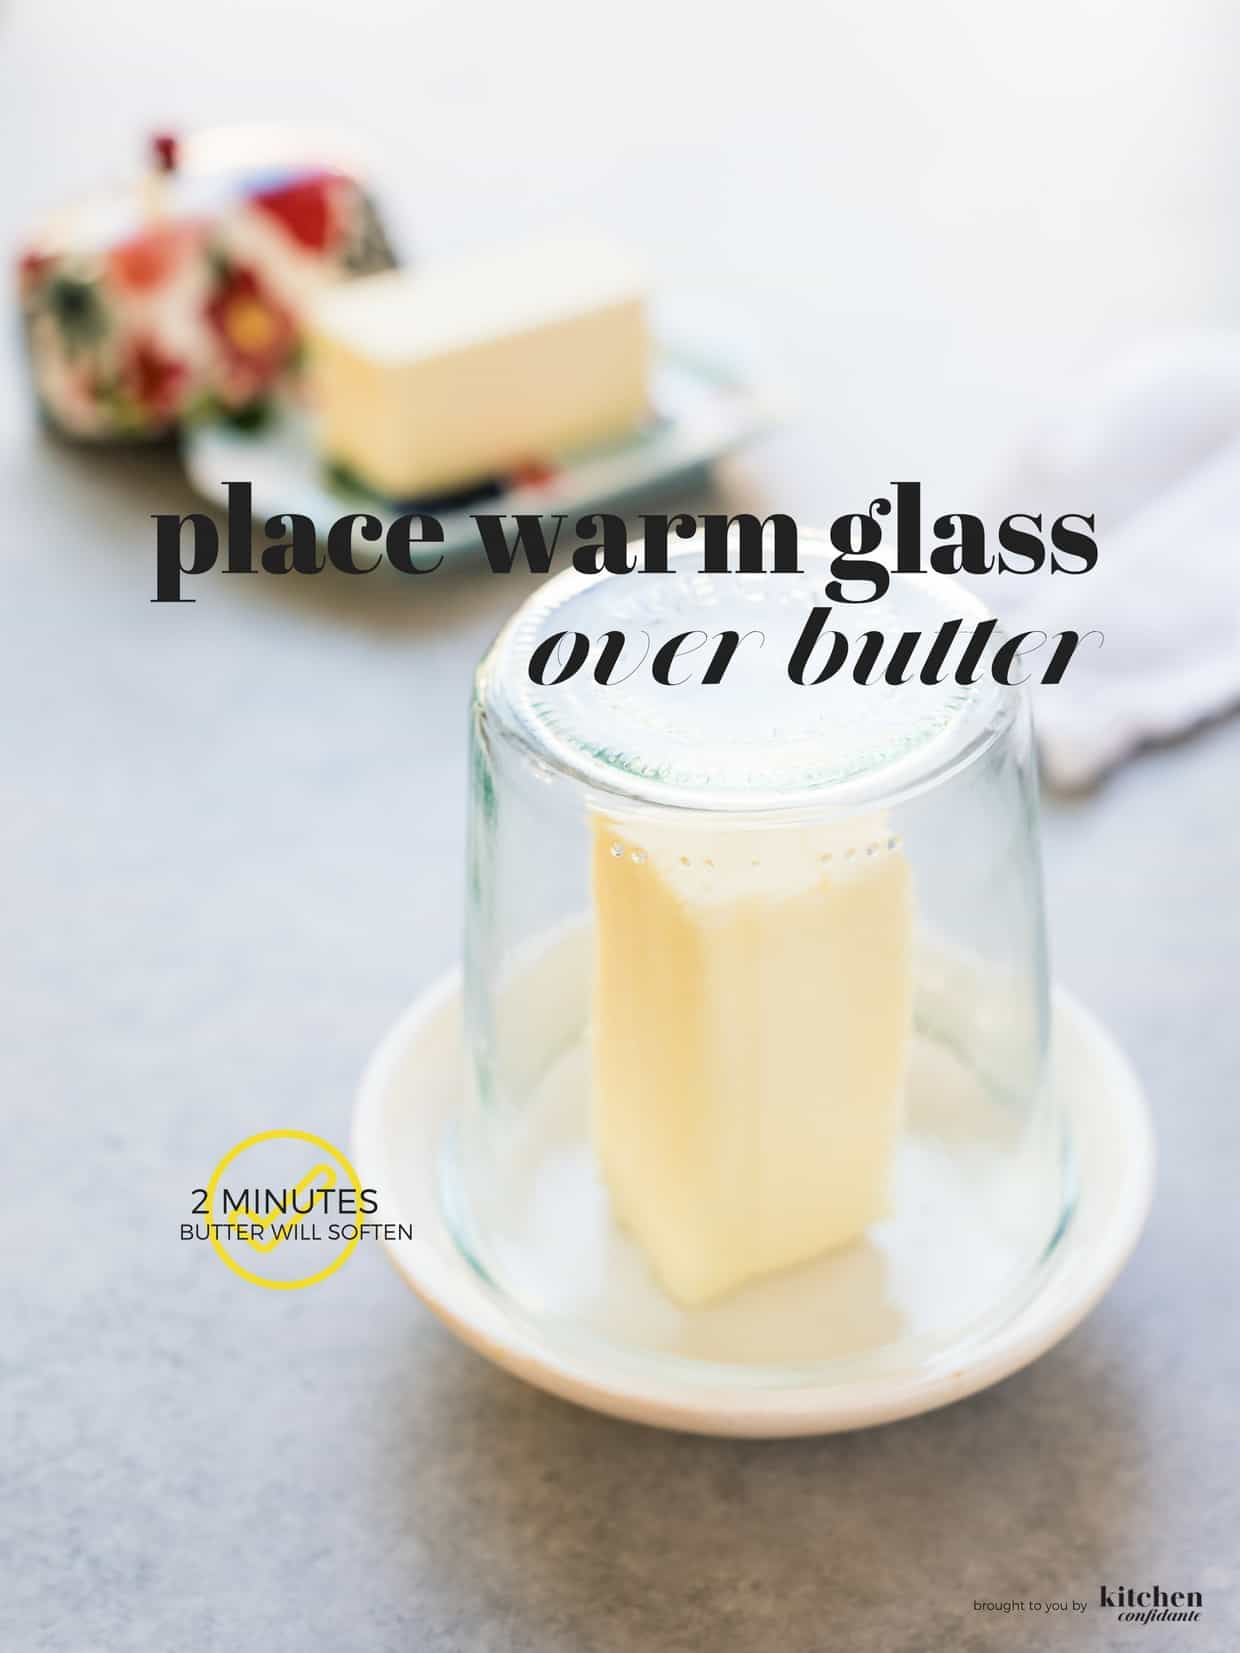 Need to soften butter fast? Learn how to soften butter quickly with One Quick Tip using a warm glass!